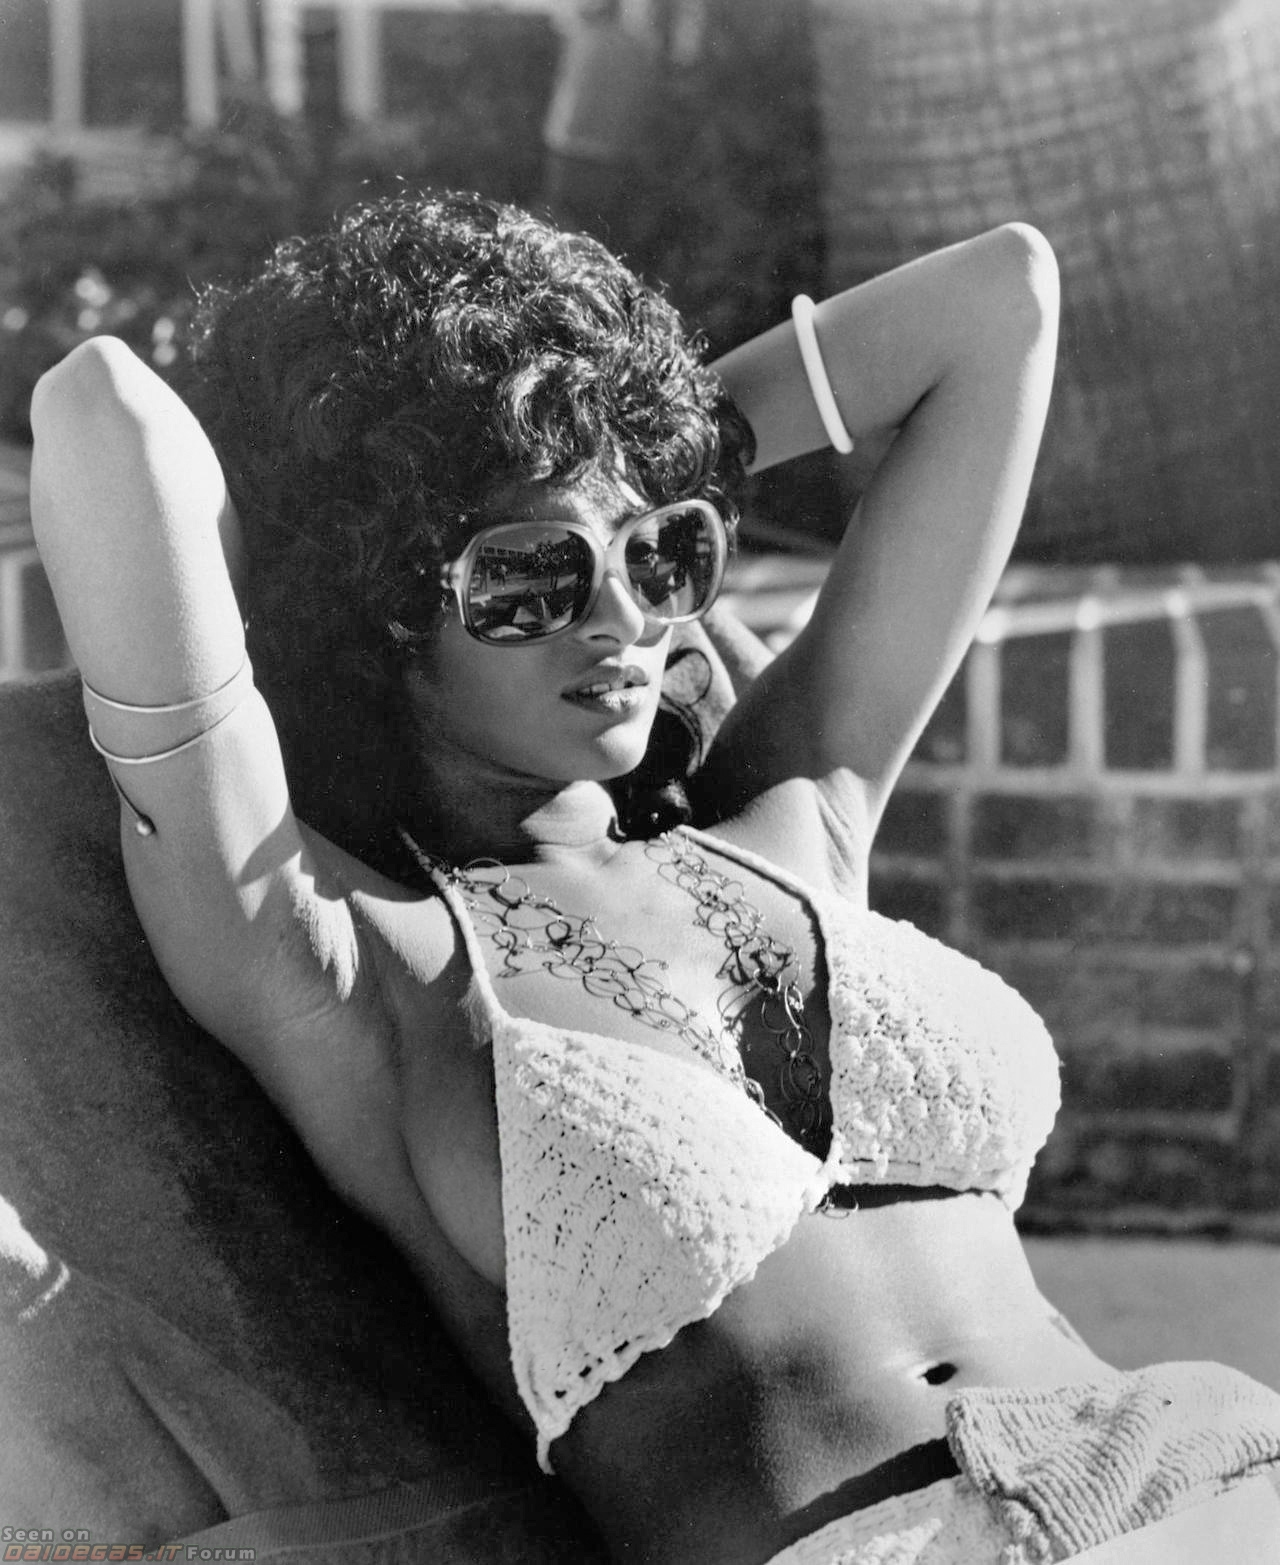 Pam grier nackt Arena Video